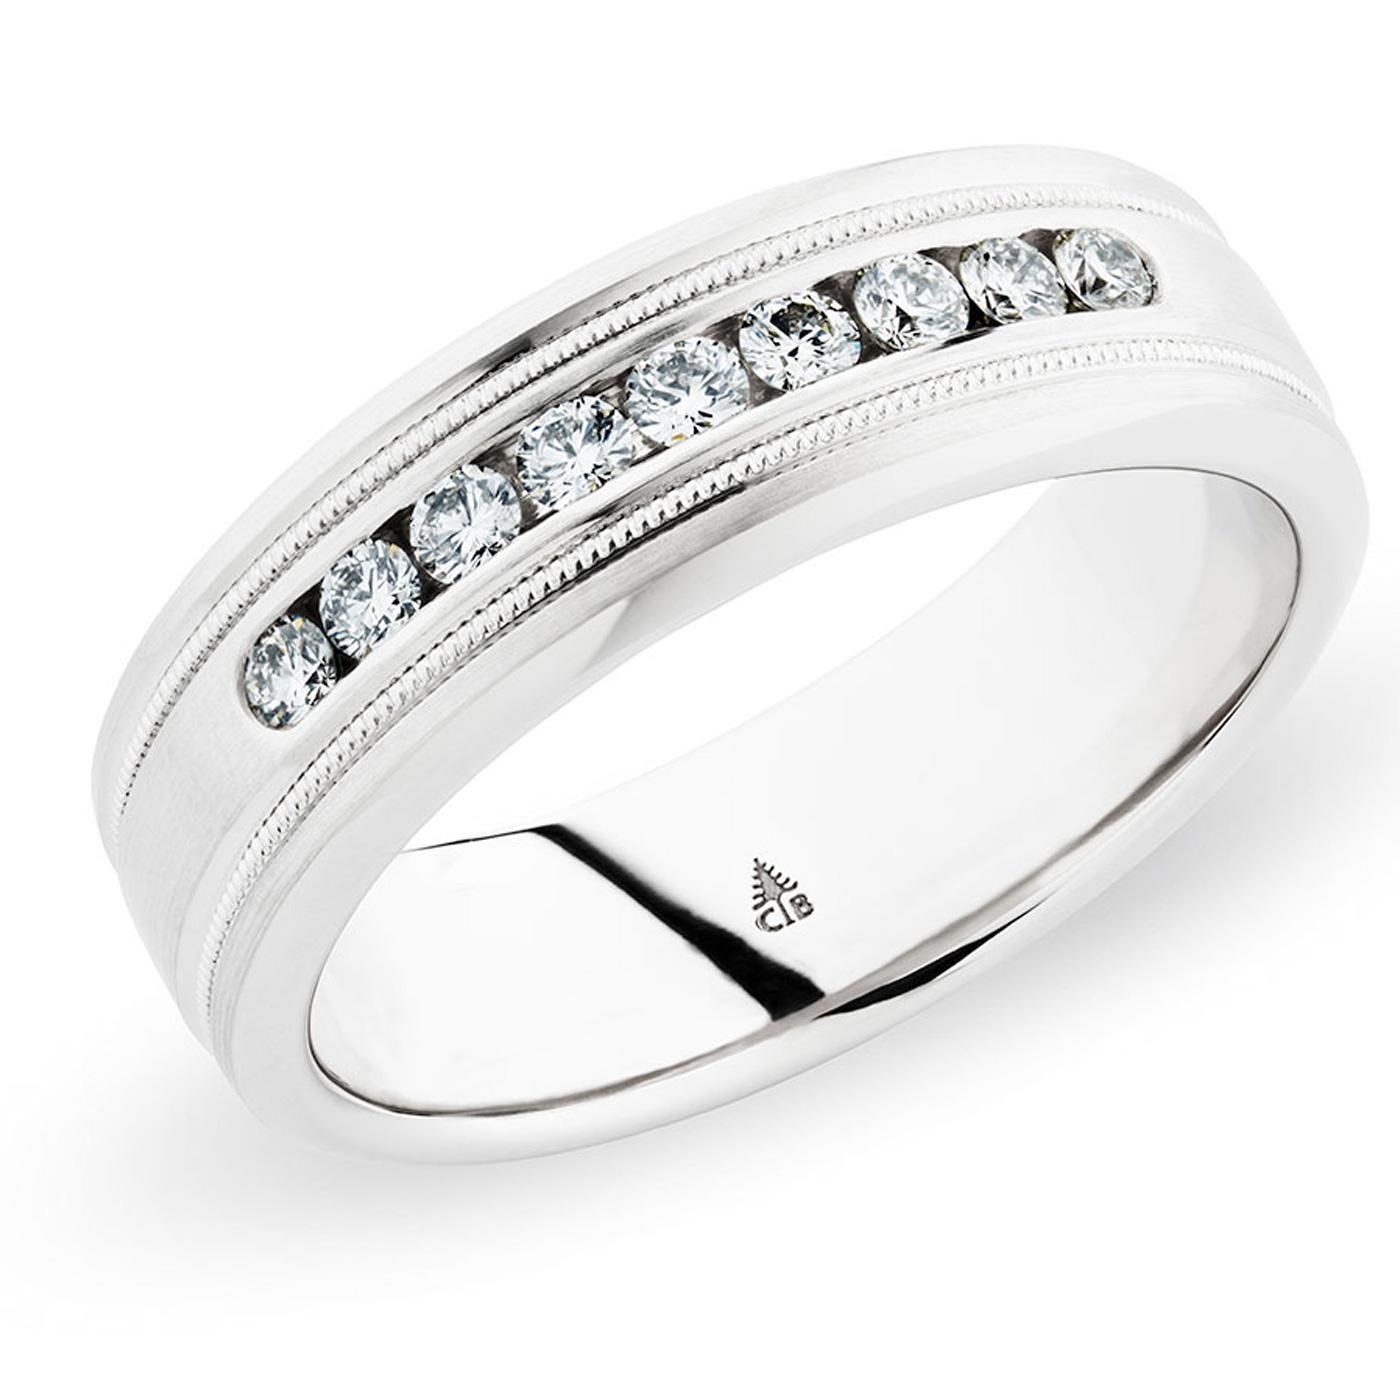 245451 christian bauer palladium diamond wedding ring for Christian bauer wedding rings